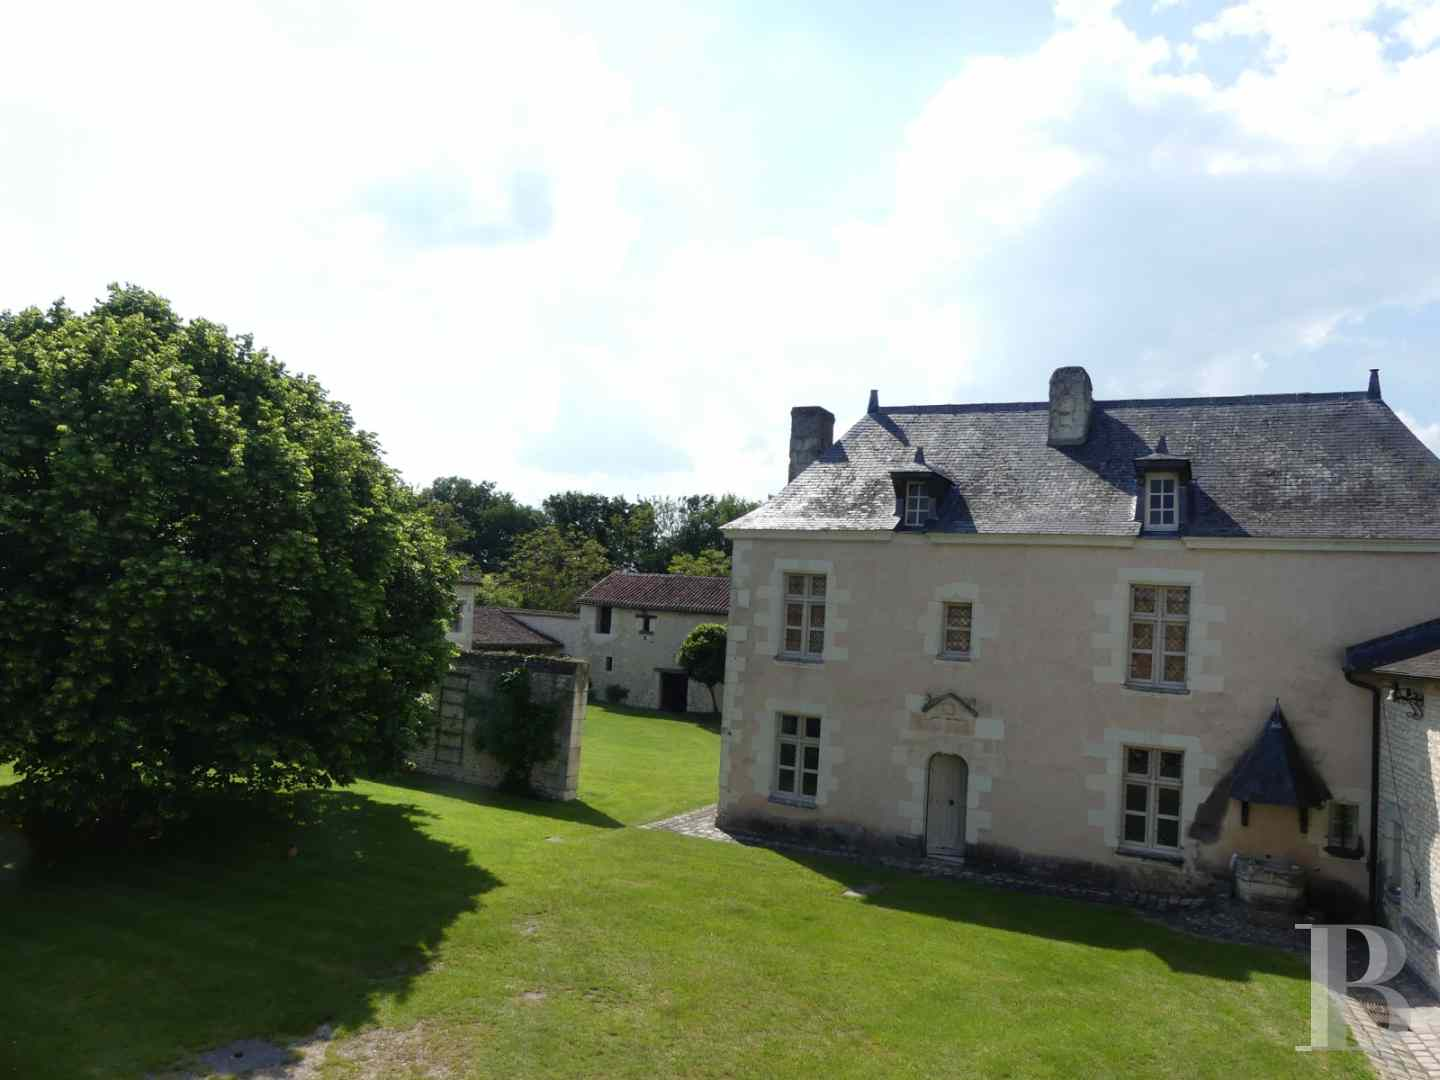 property for sale France poitou charentes residences historic - 3 zoom